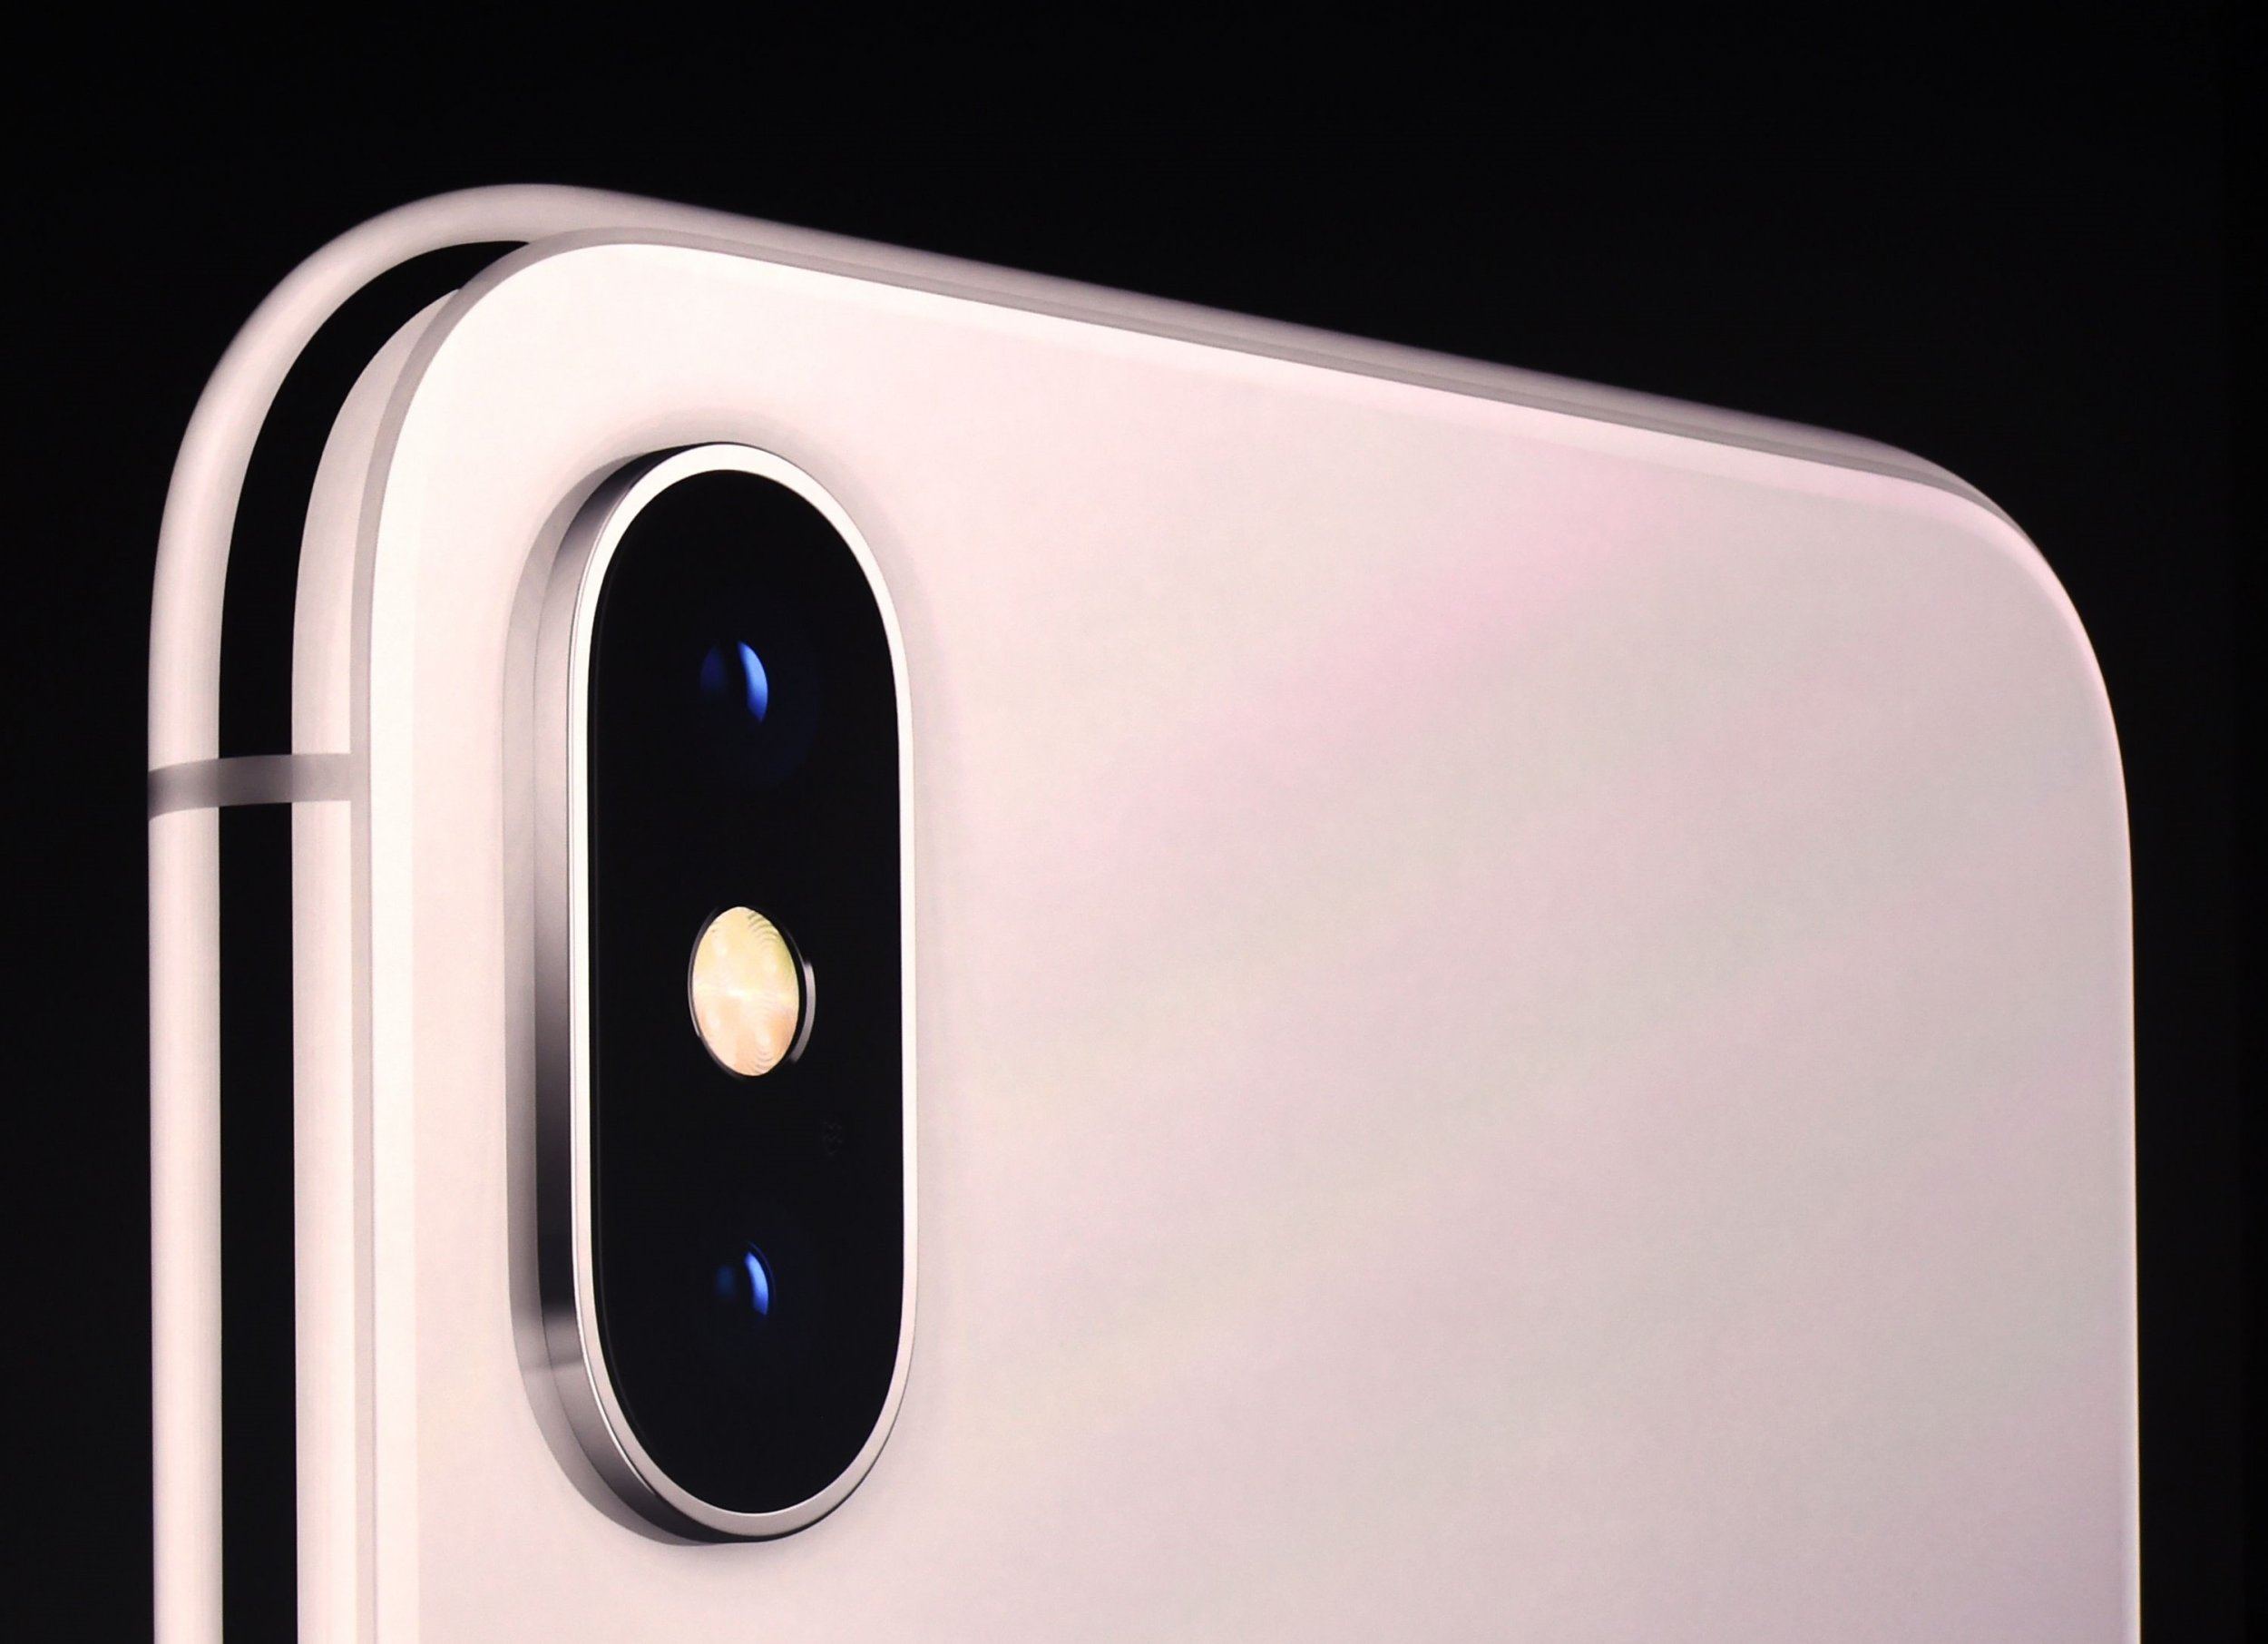 iphone x availability apple pre-order